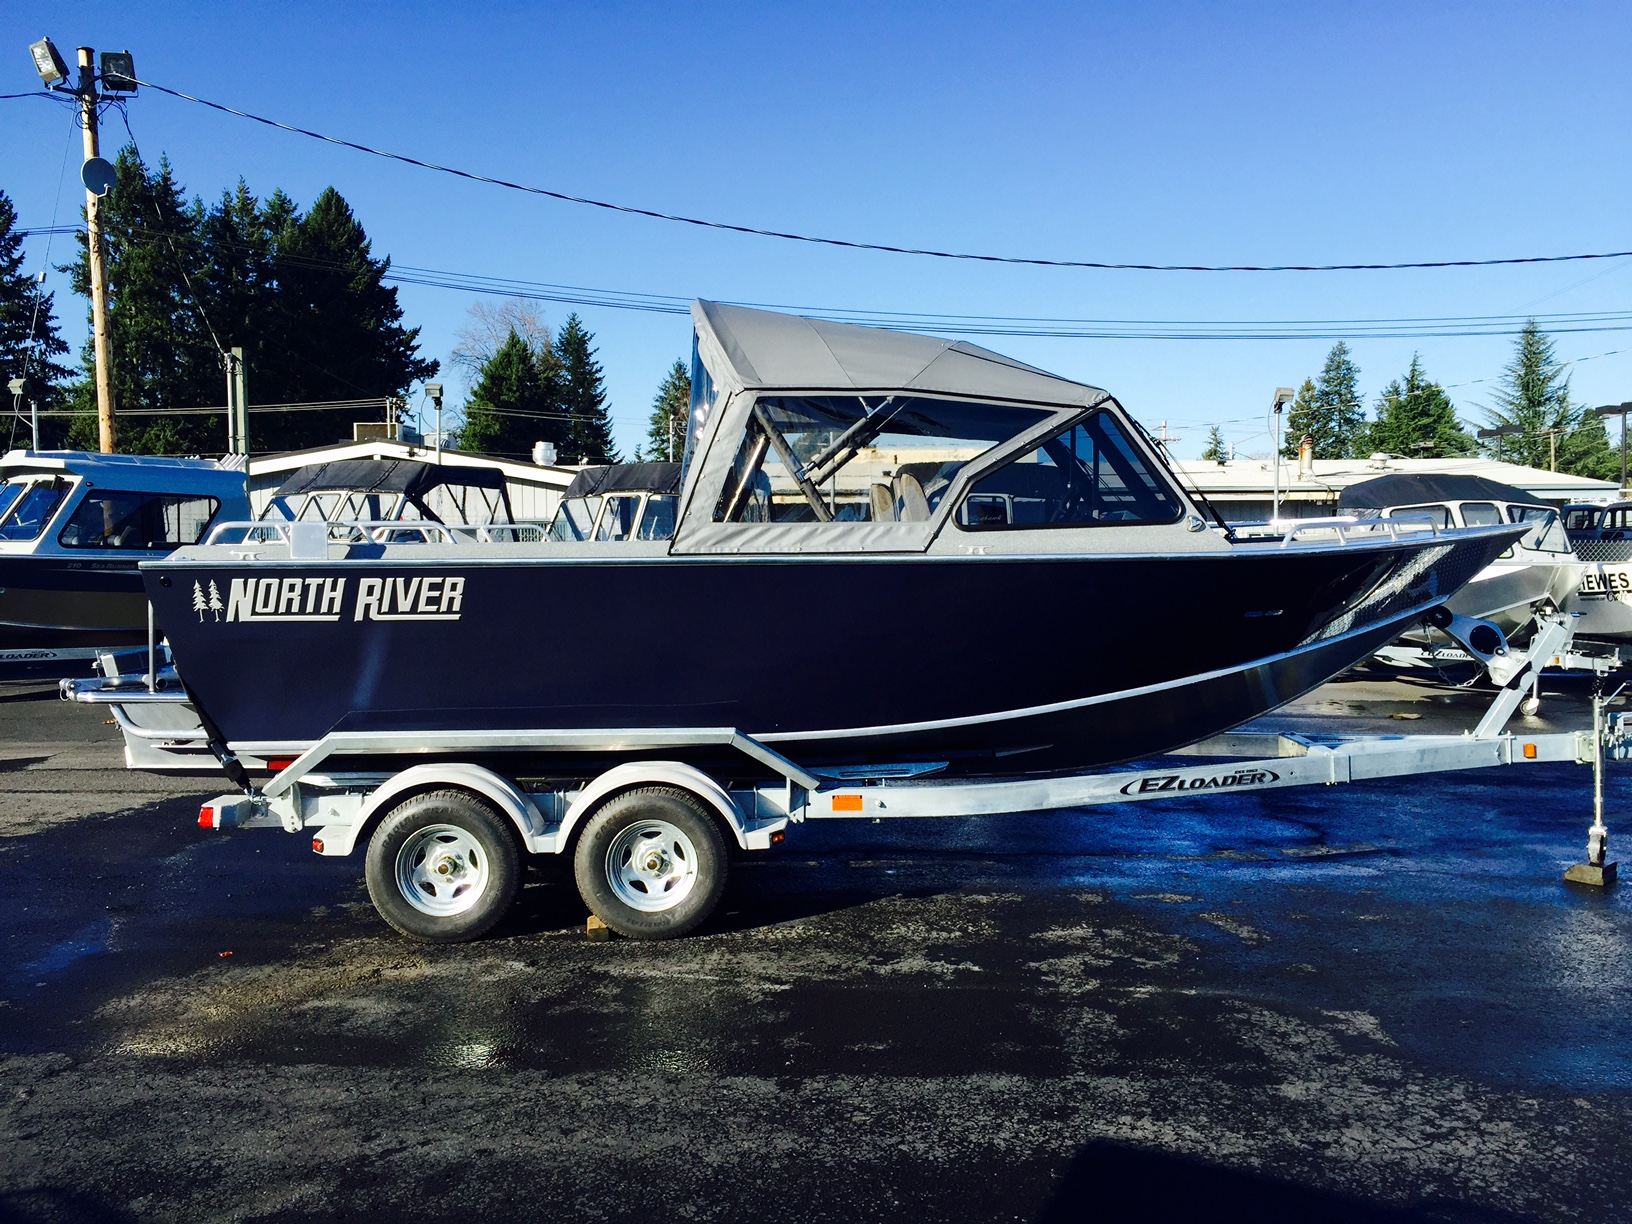 2016 North River 21 Seahawk 23 Foot 2016 Boat In